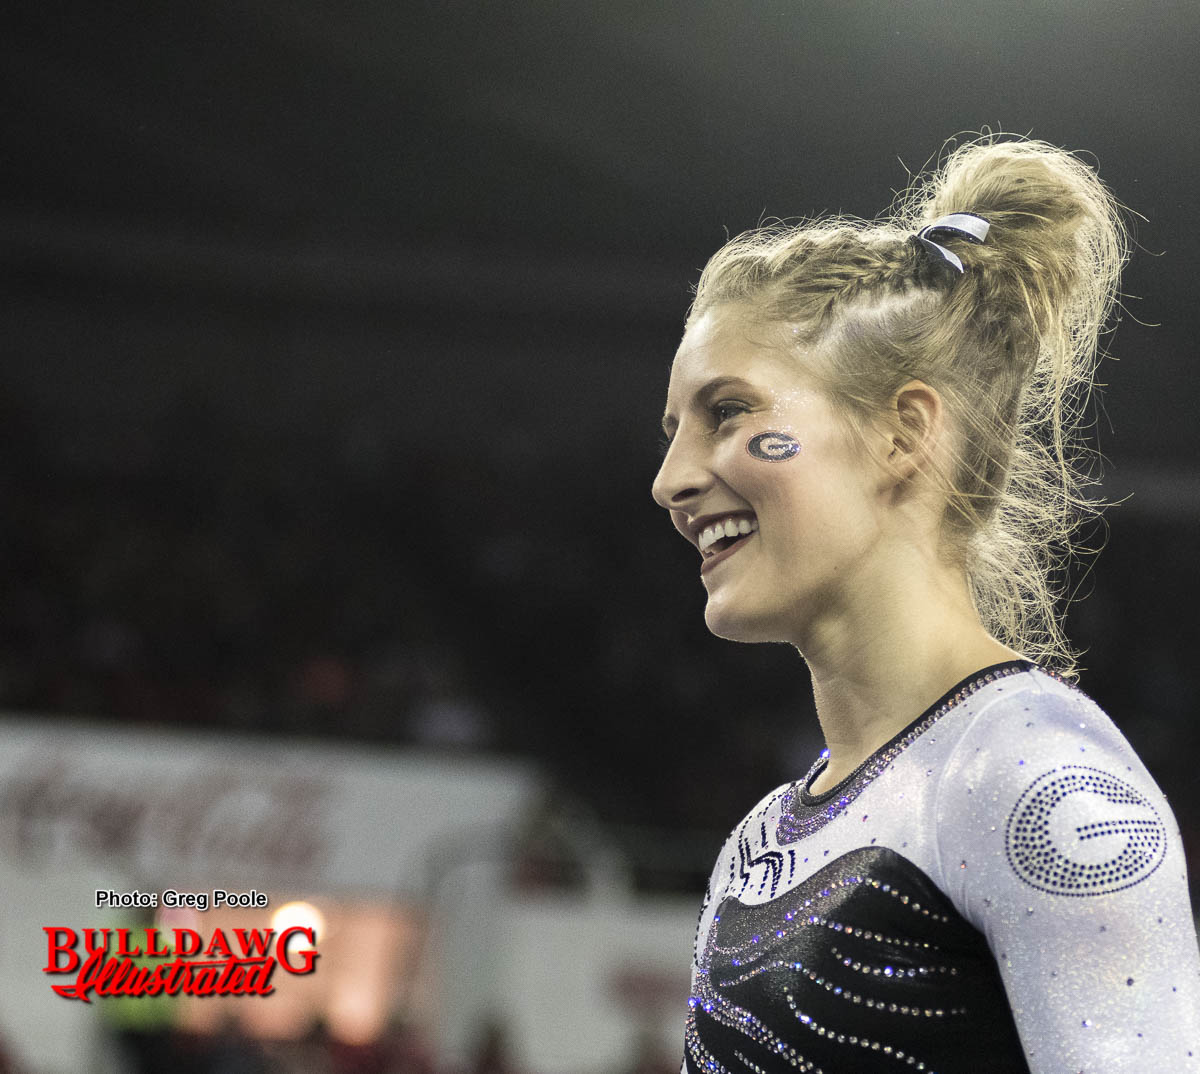 Sydney Snead smiles after a impressive routine.